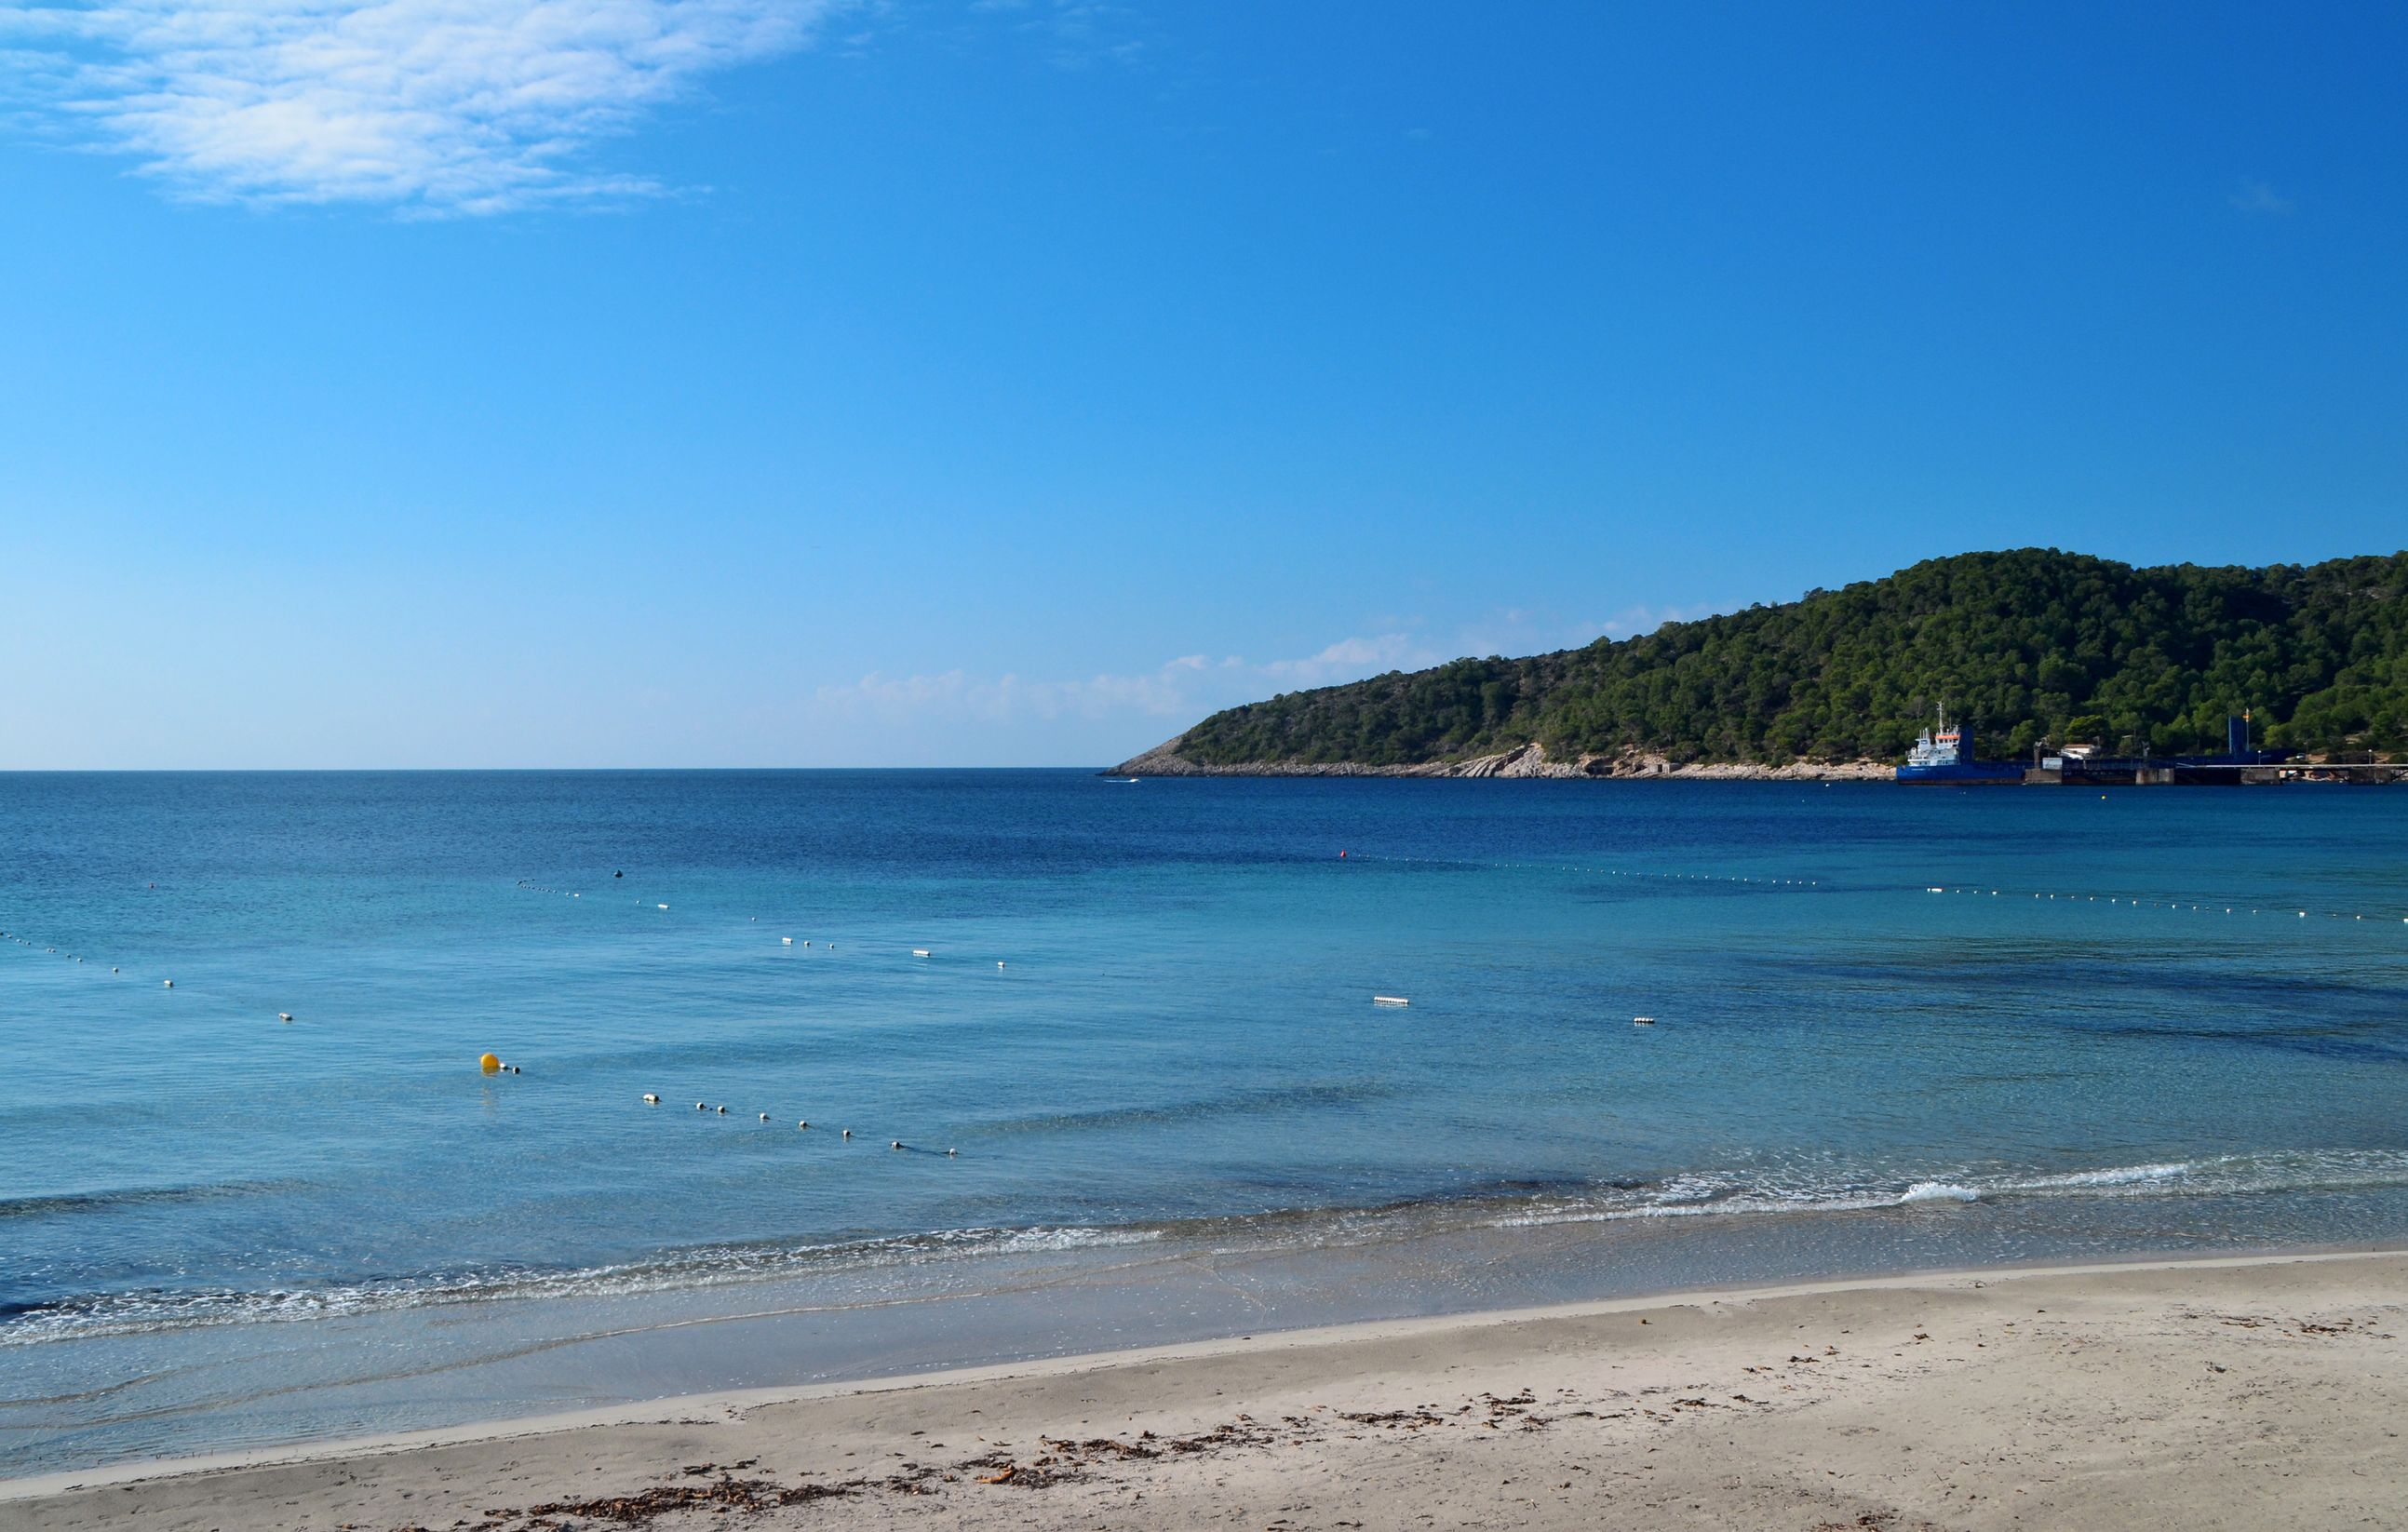 Las Salinas beach is one of the best in Ibiza and the Balearics